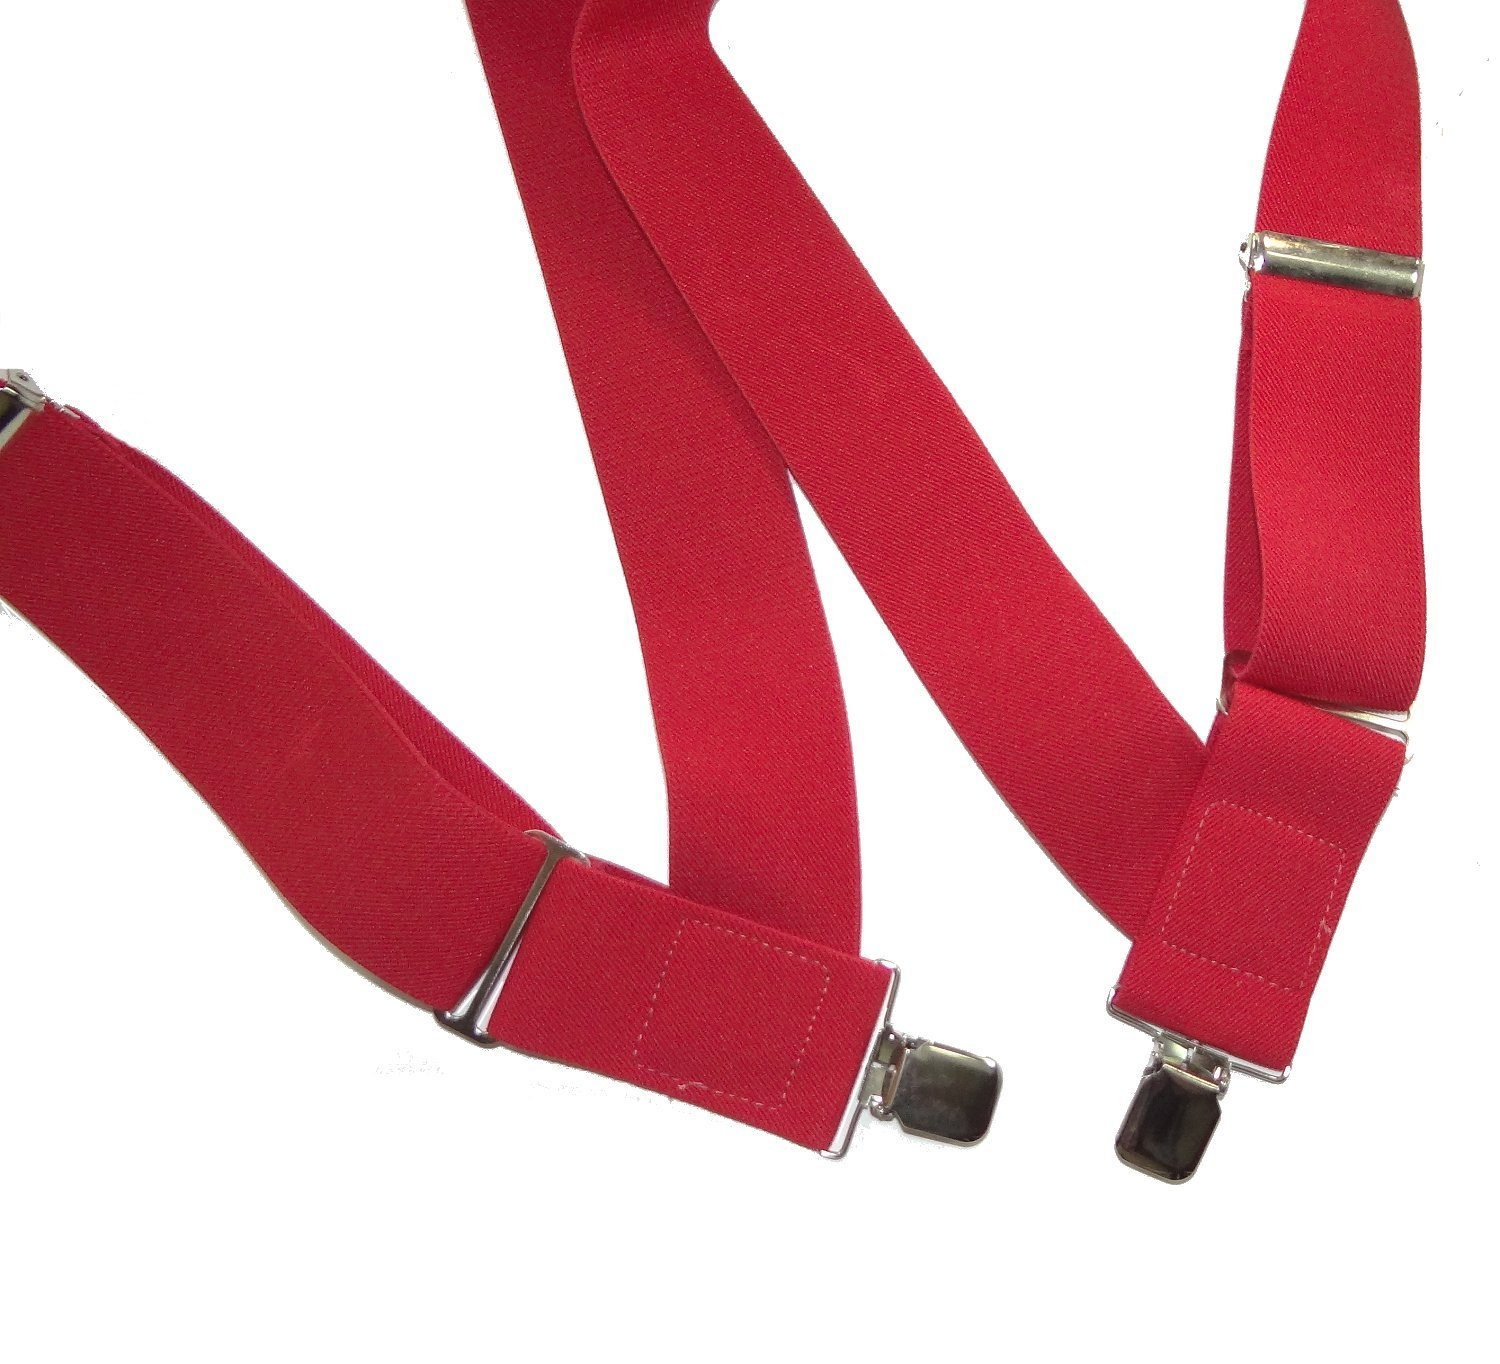 Holdup Hip-clip Trucker Style 2'' Wide Bright RED Side Clip Suspenders